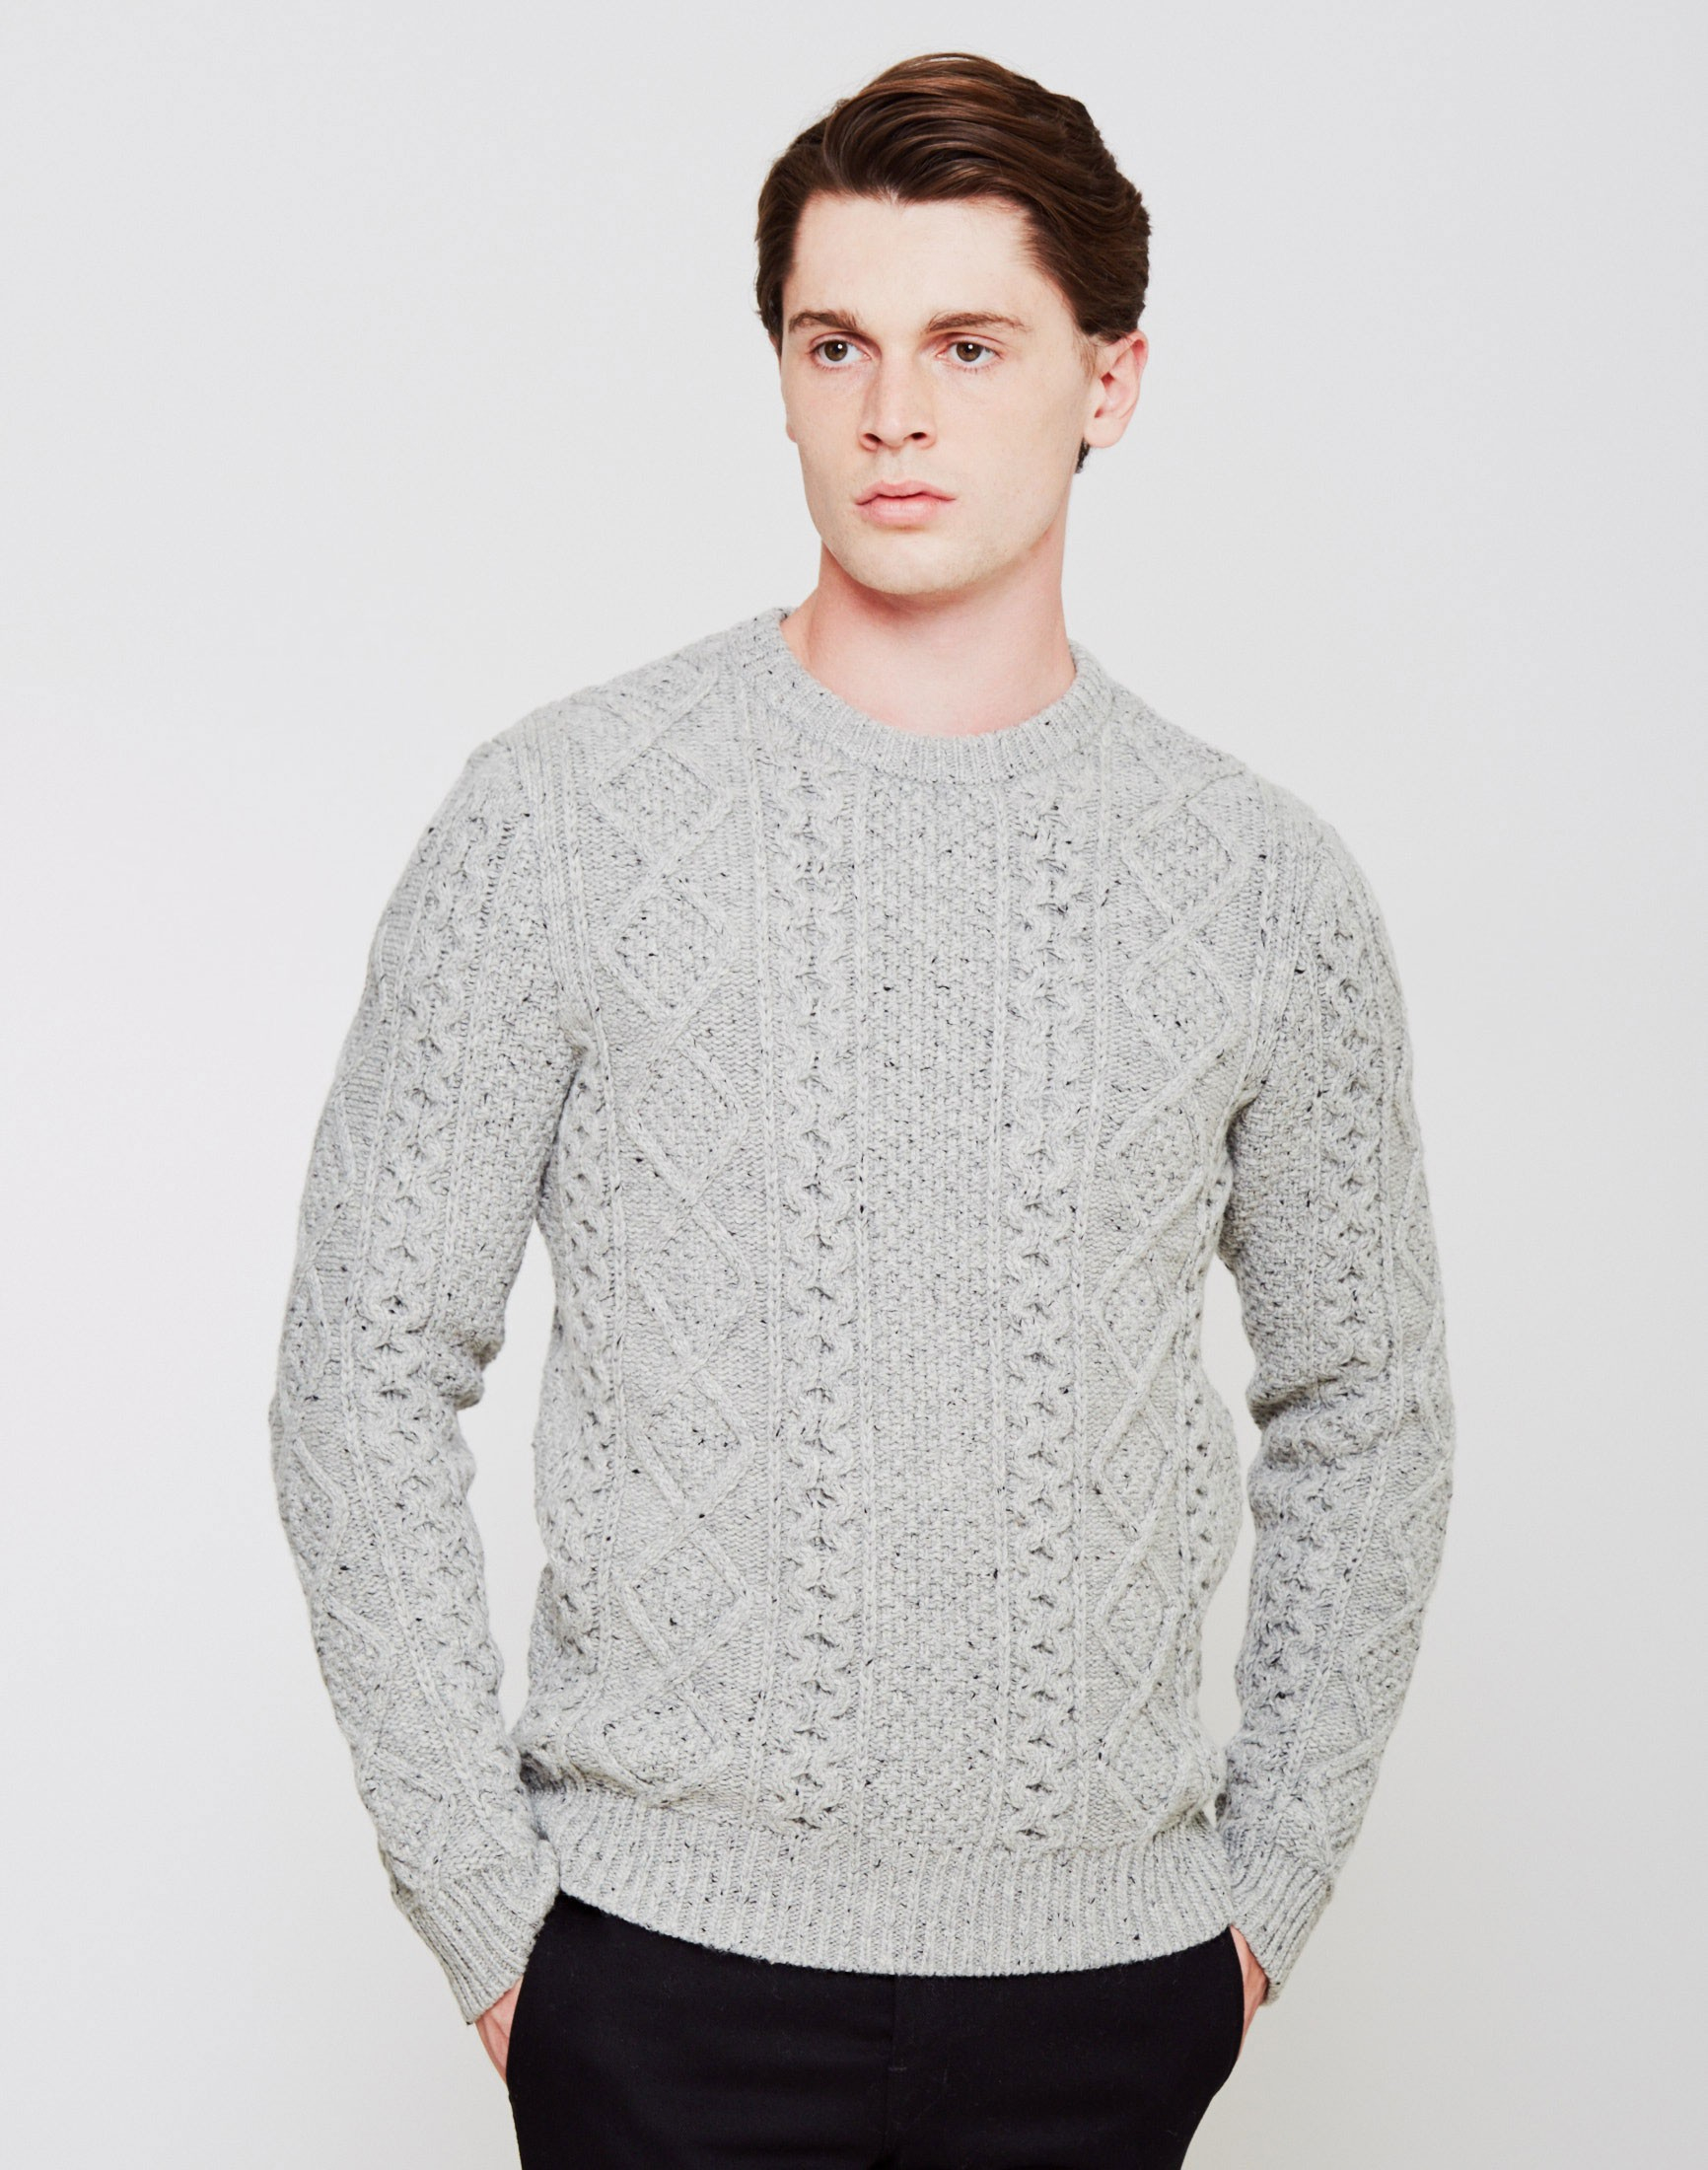 Pictures Sale Online Mens Fisherman Cable Crew Jumper Levi's Discount Geniue Stockist Clearance Cheapest yUhXjyGwFJ